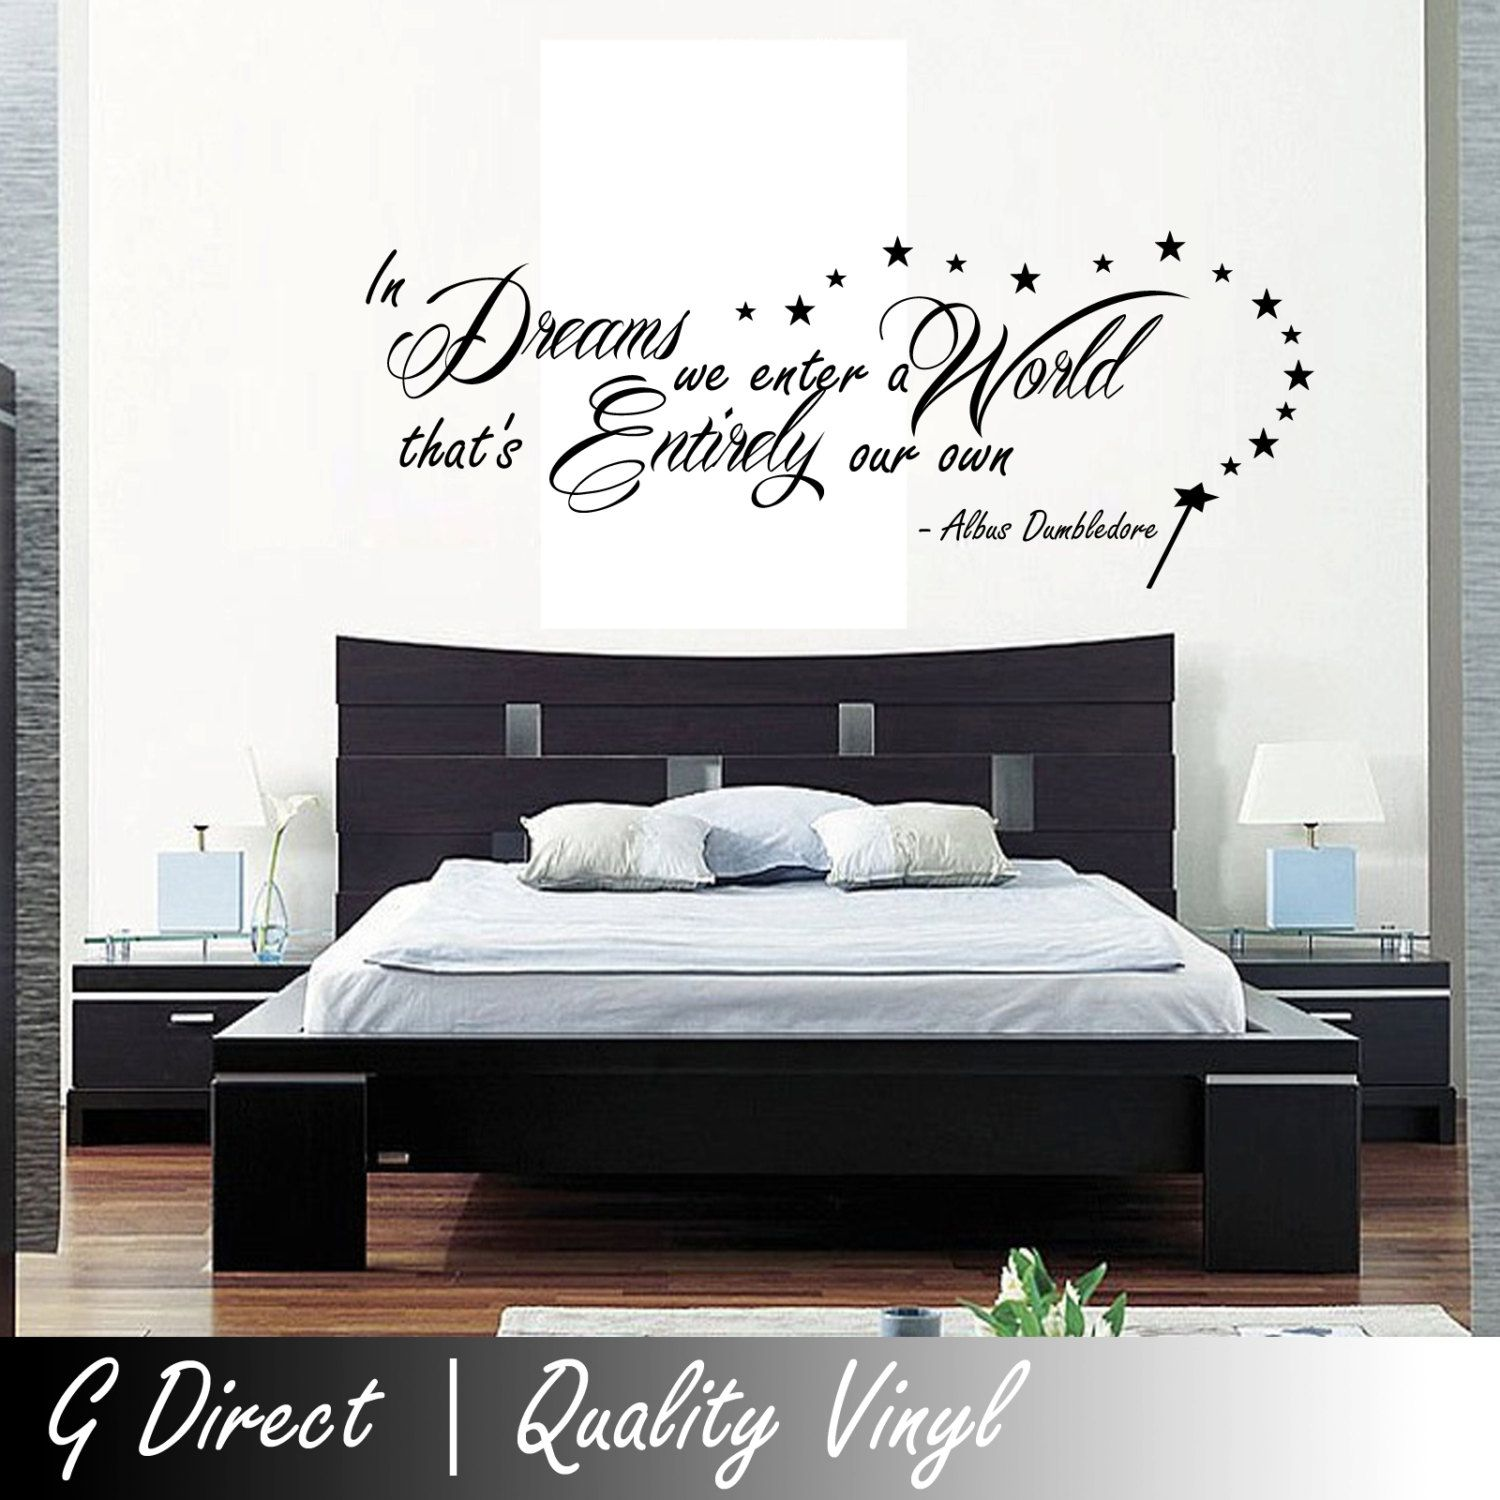 Harry Potter In Dreams We Enter Dumbledore Wall Sticker Vinyl